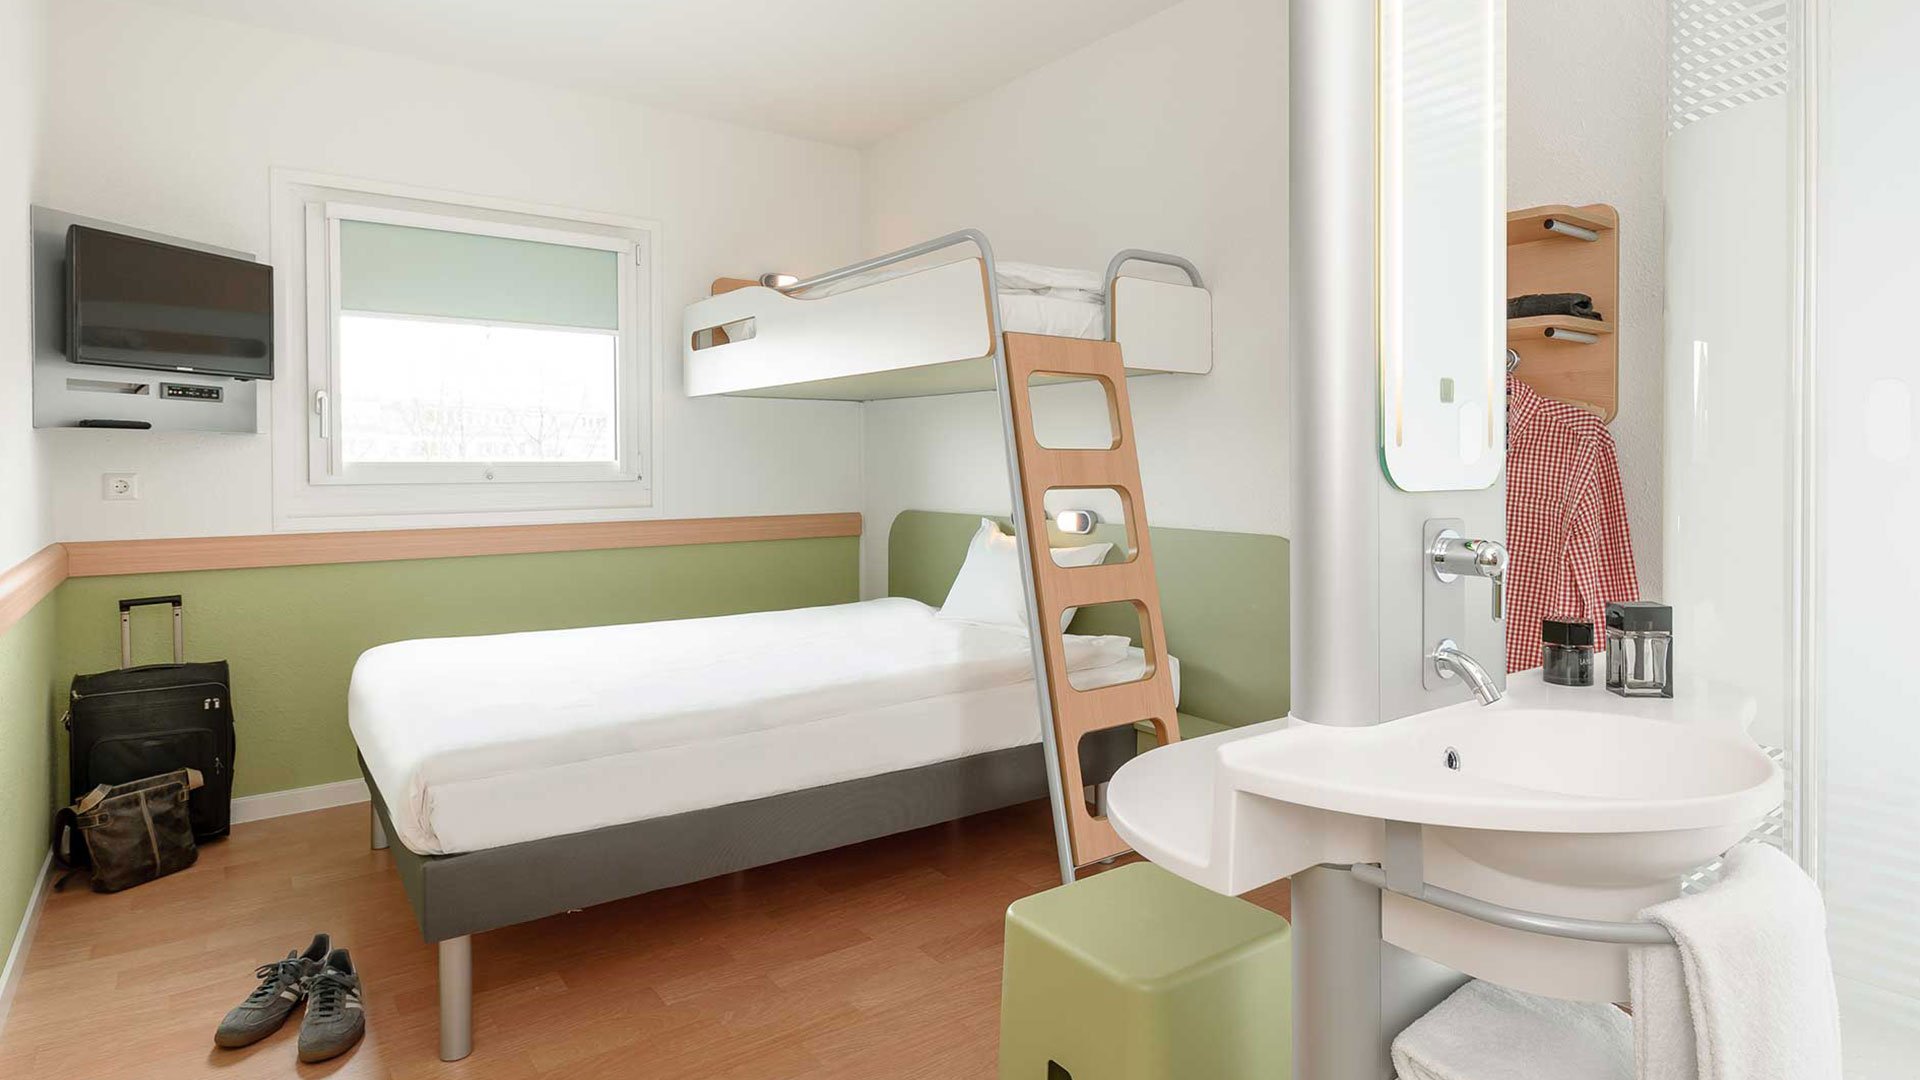 Photo of a room view - 02 - ibis budget Ludwigsburg